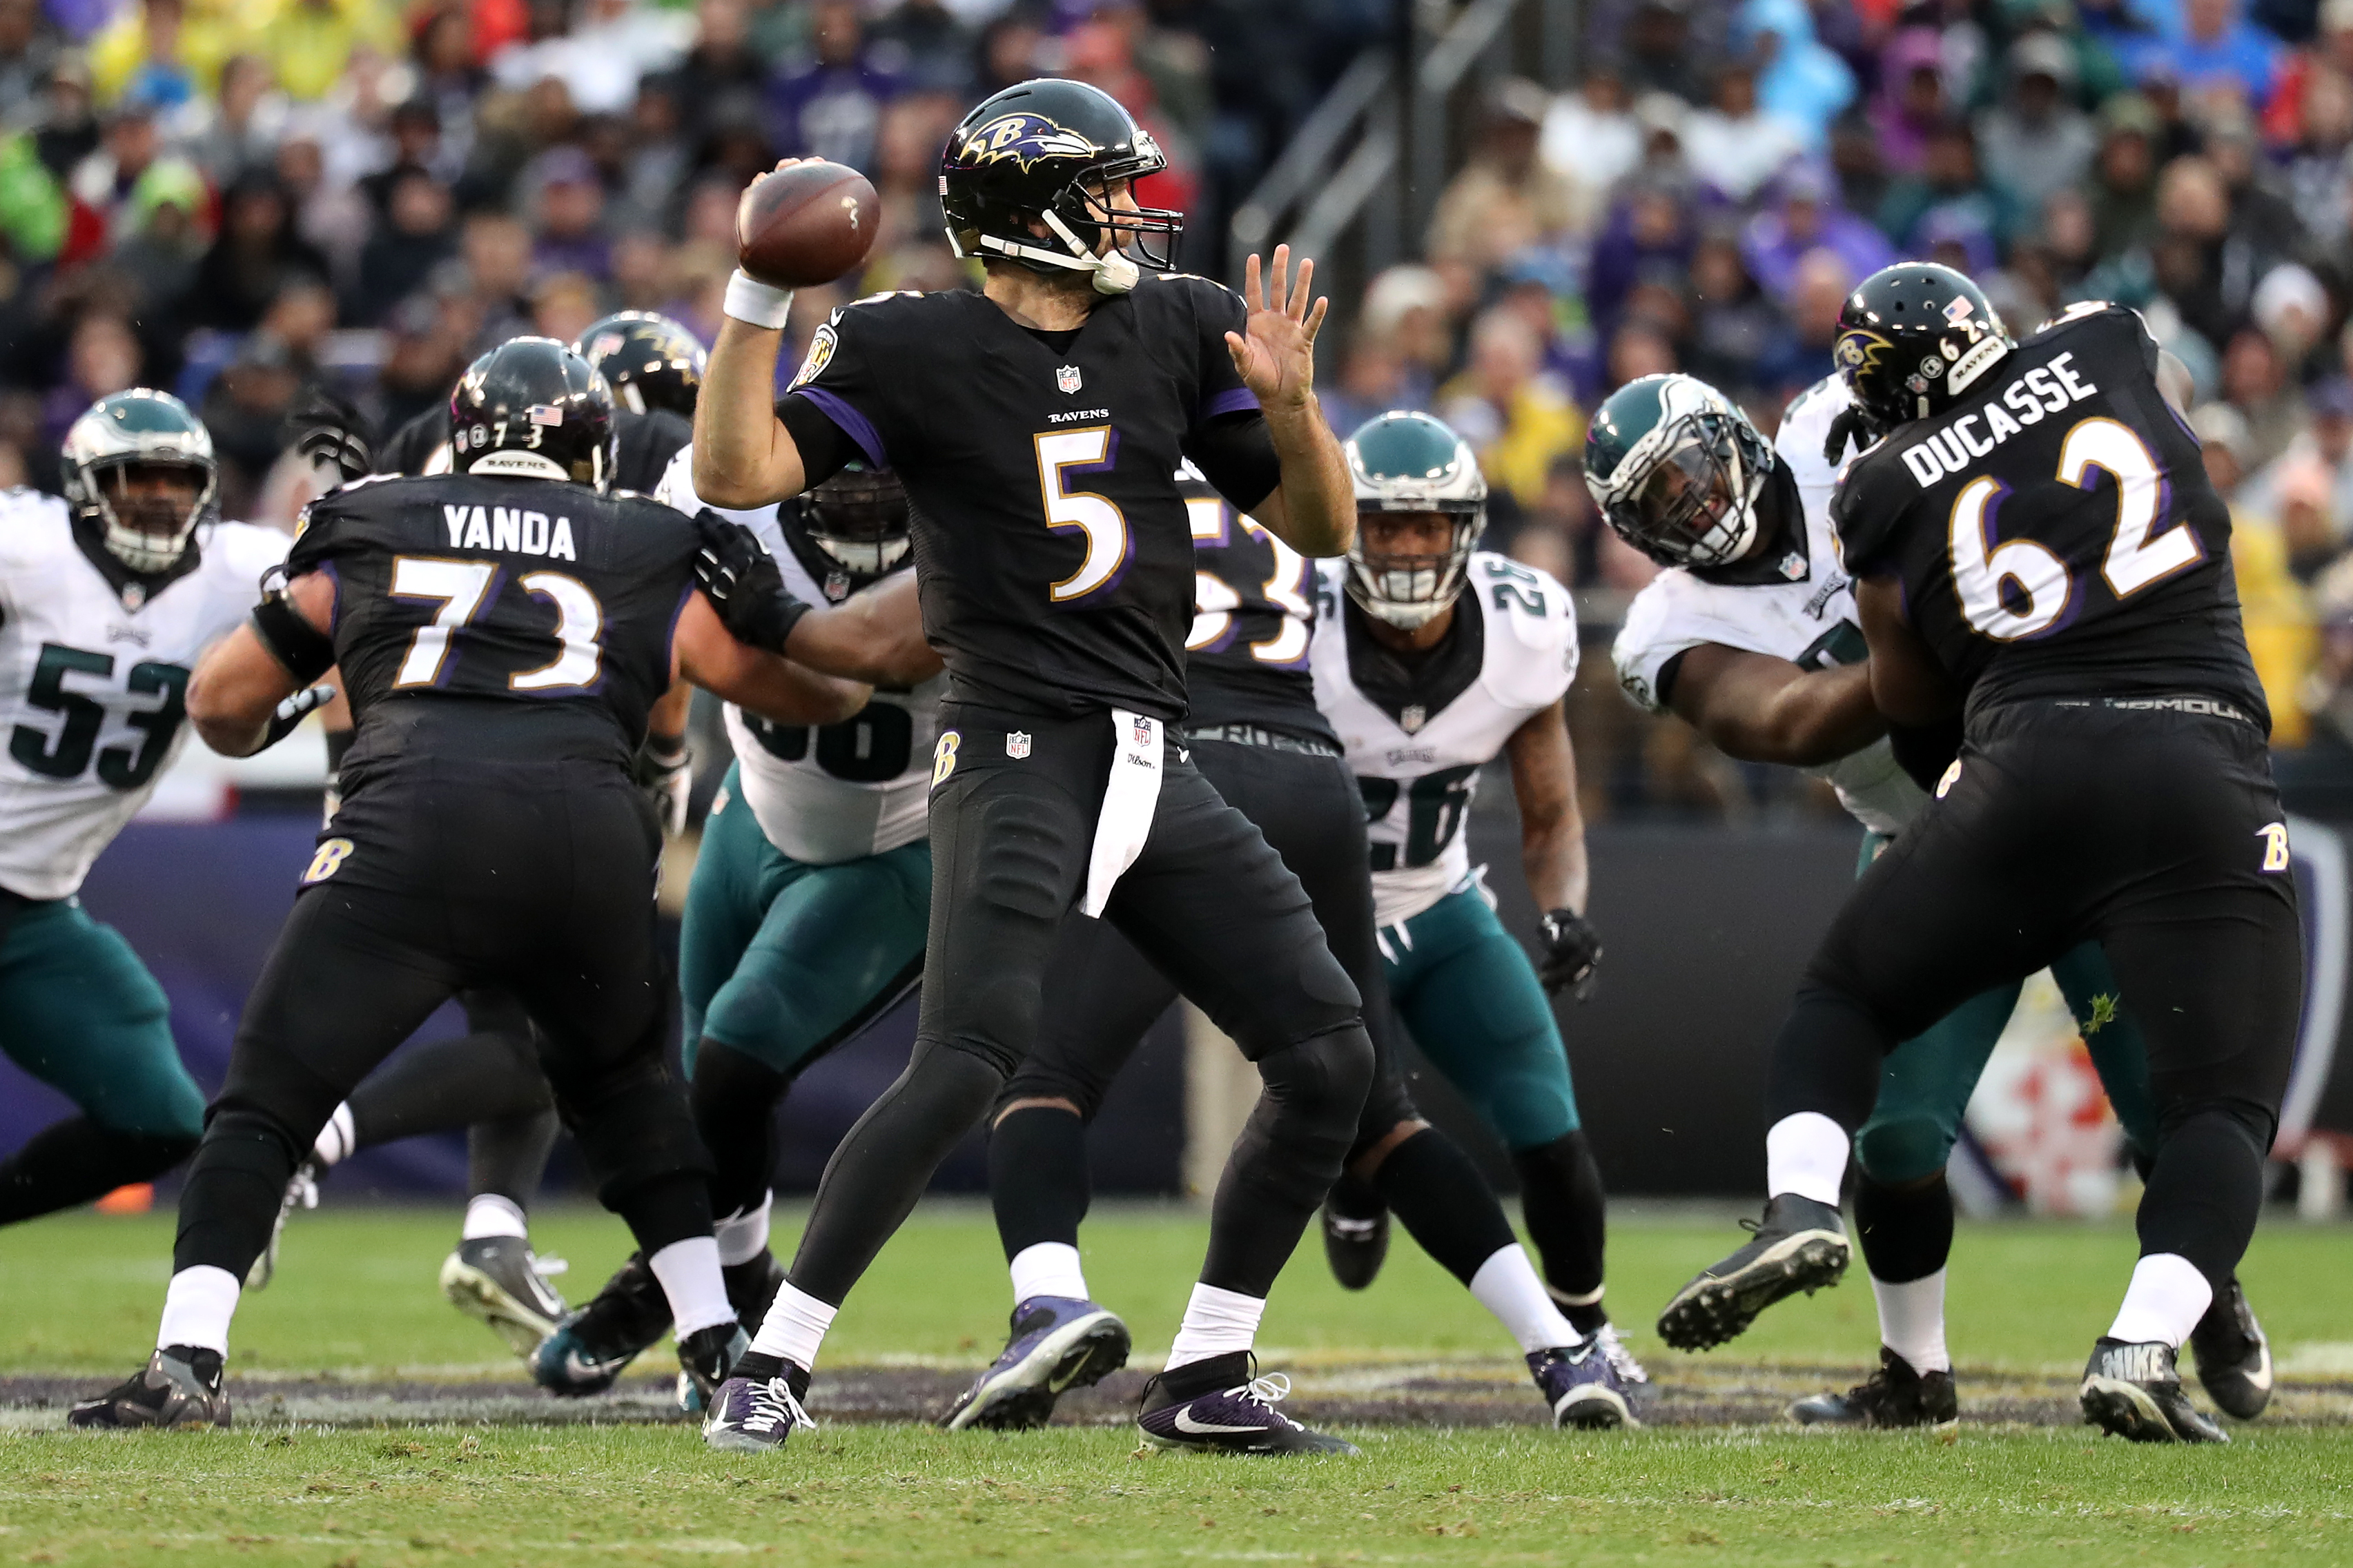 Quarterback Joe Flacco #5 of the Baltimore Ravens passes the ball while teammates guard Marshal Yanda #73 and offensive guard Vladimir Ducasse #62 block against the Philadelphia Eagles in the second quarter at M&T Bank Stadium on Dec. 18, 2016, in Baltimore, Md. (Getty Images)